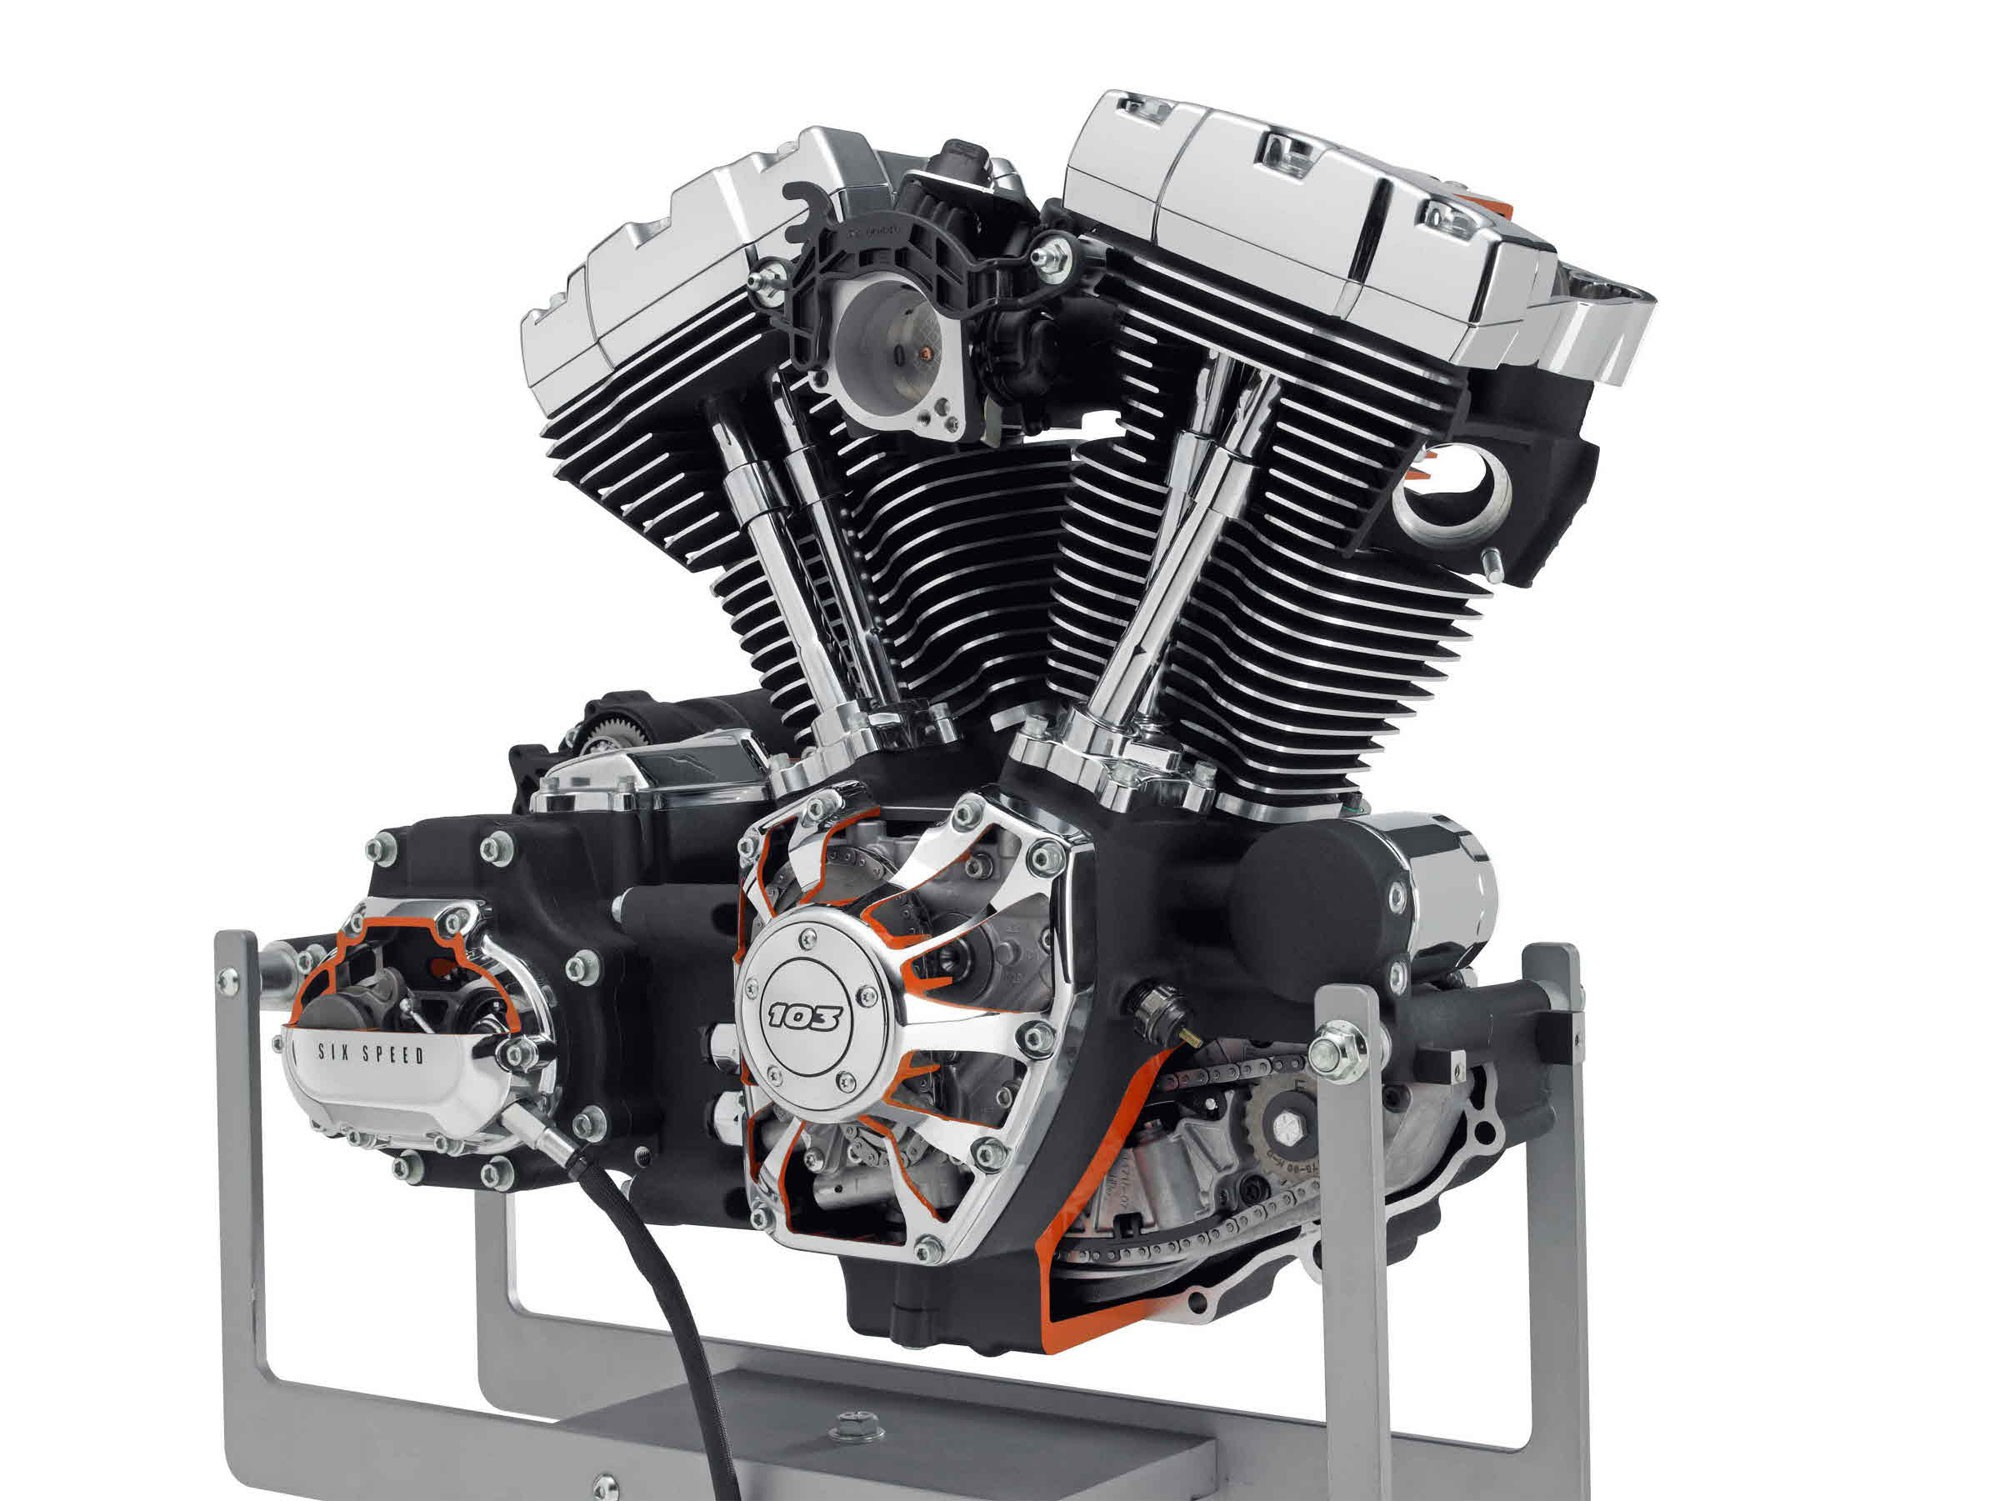 Harley Davidson Engine Schematics And Diagrams Free Download Oasis Wiring Online Diagram Full Hd Maps Locations Another Harness At